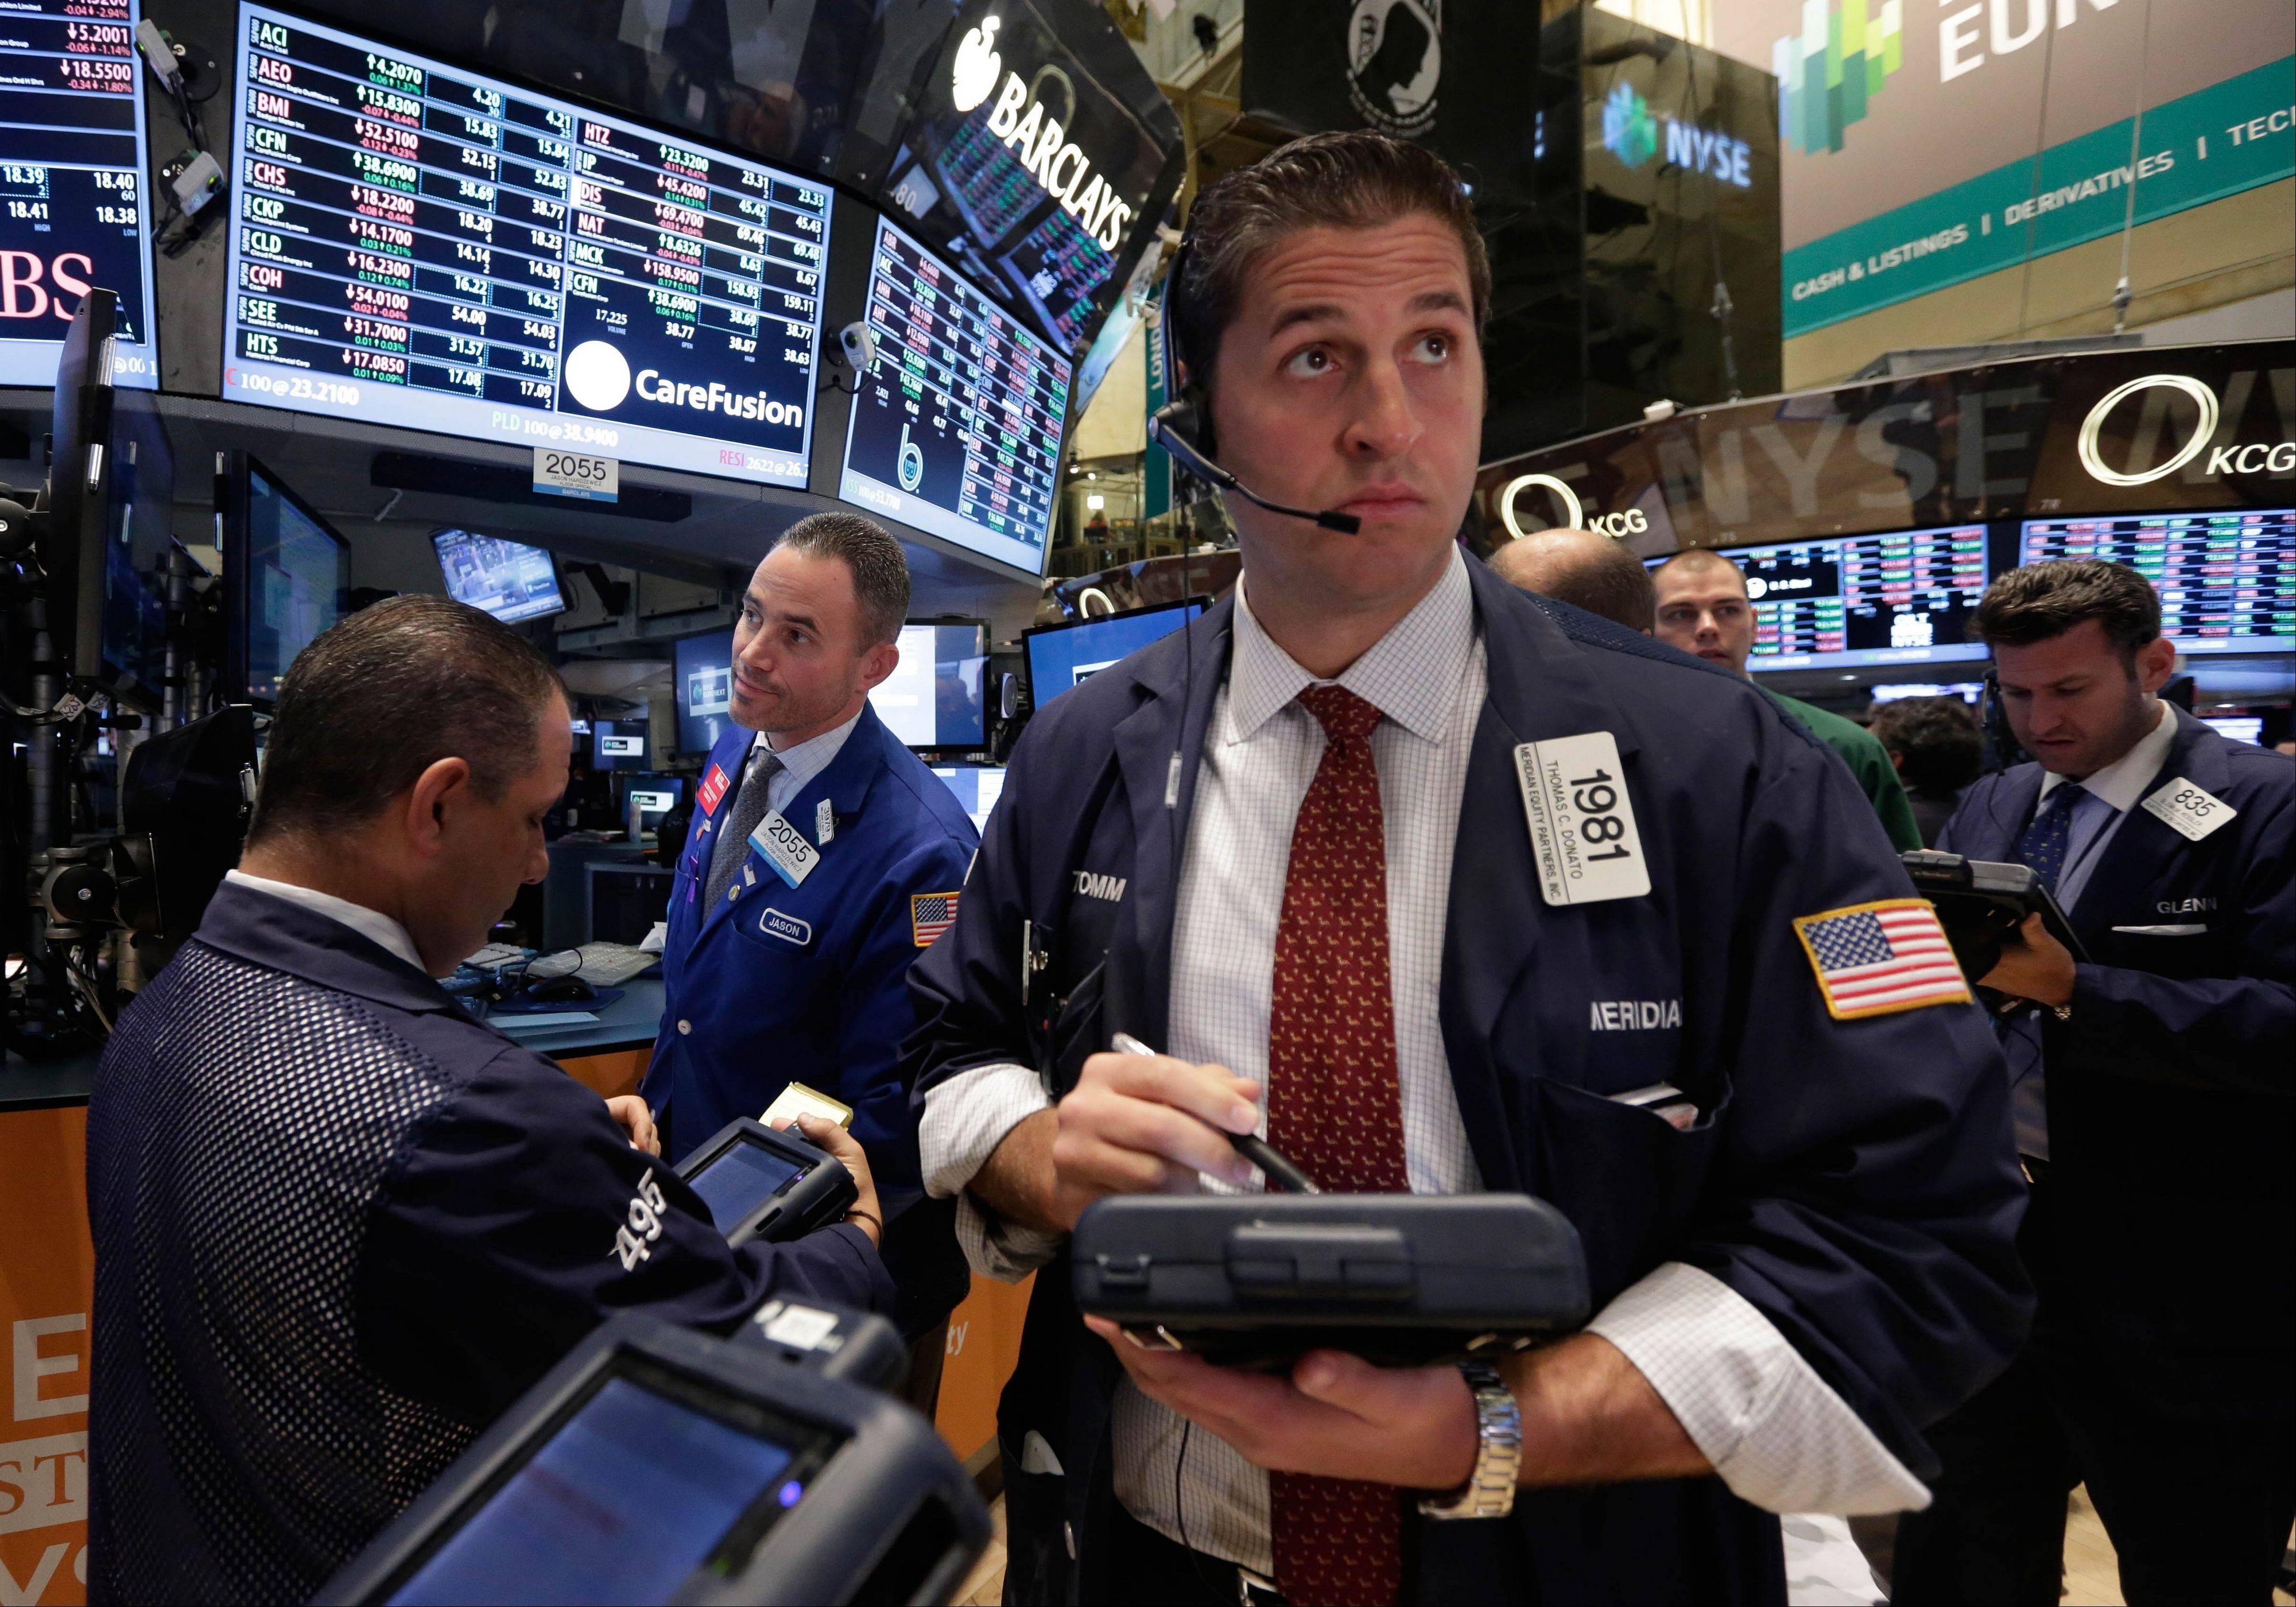 U.S. stocks fell after disappointing forecasts from Best Buy Co. and Campbell Soup Co. while investors awaited a speech from Federal Reserve Chairman Ben S. Bernanke later Tuesday evening to gauge the prospect of continued stimulus.